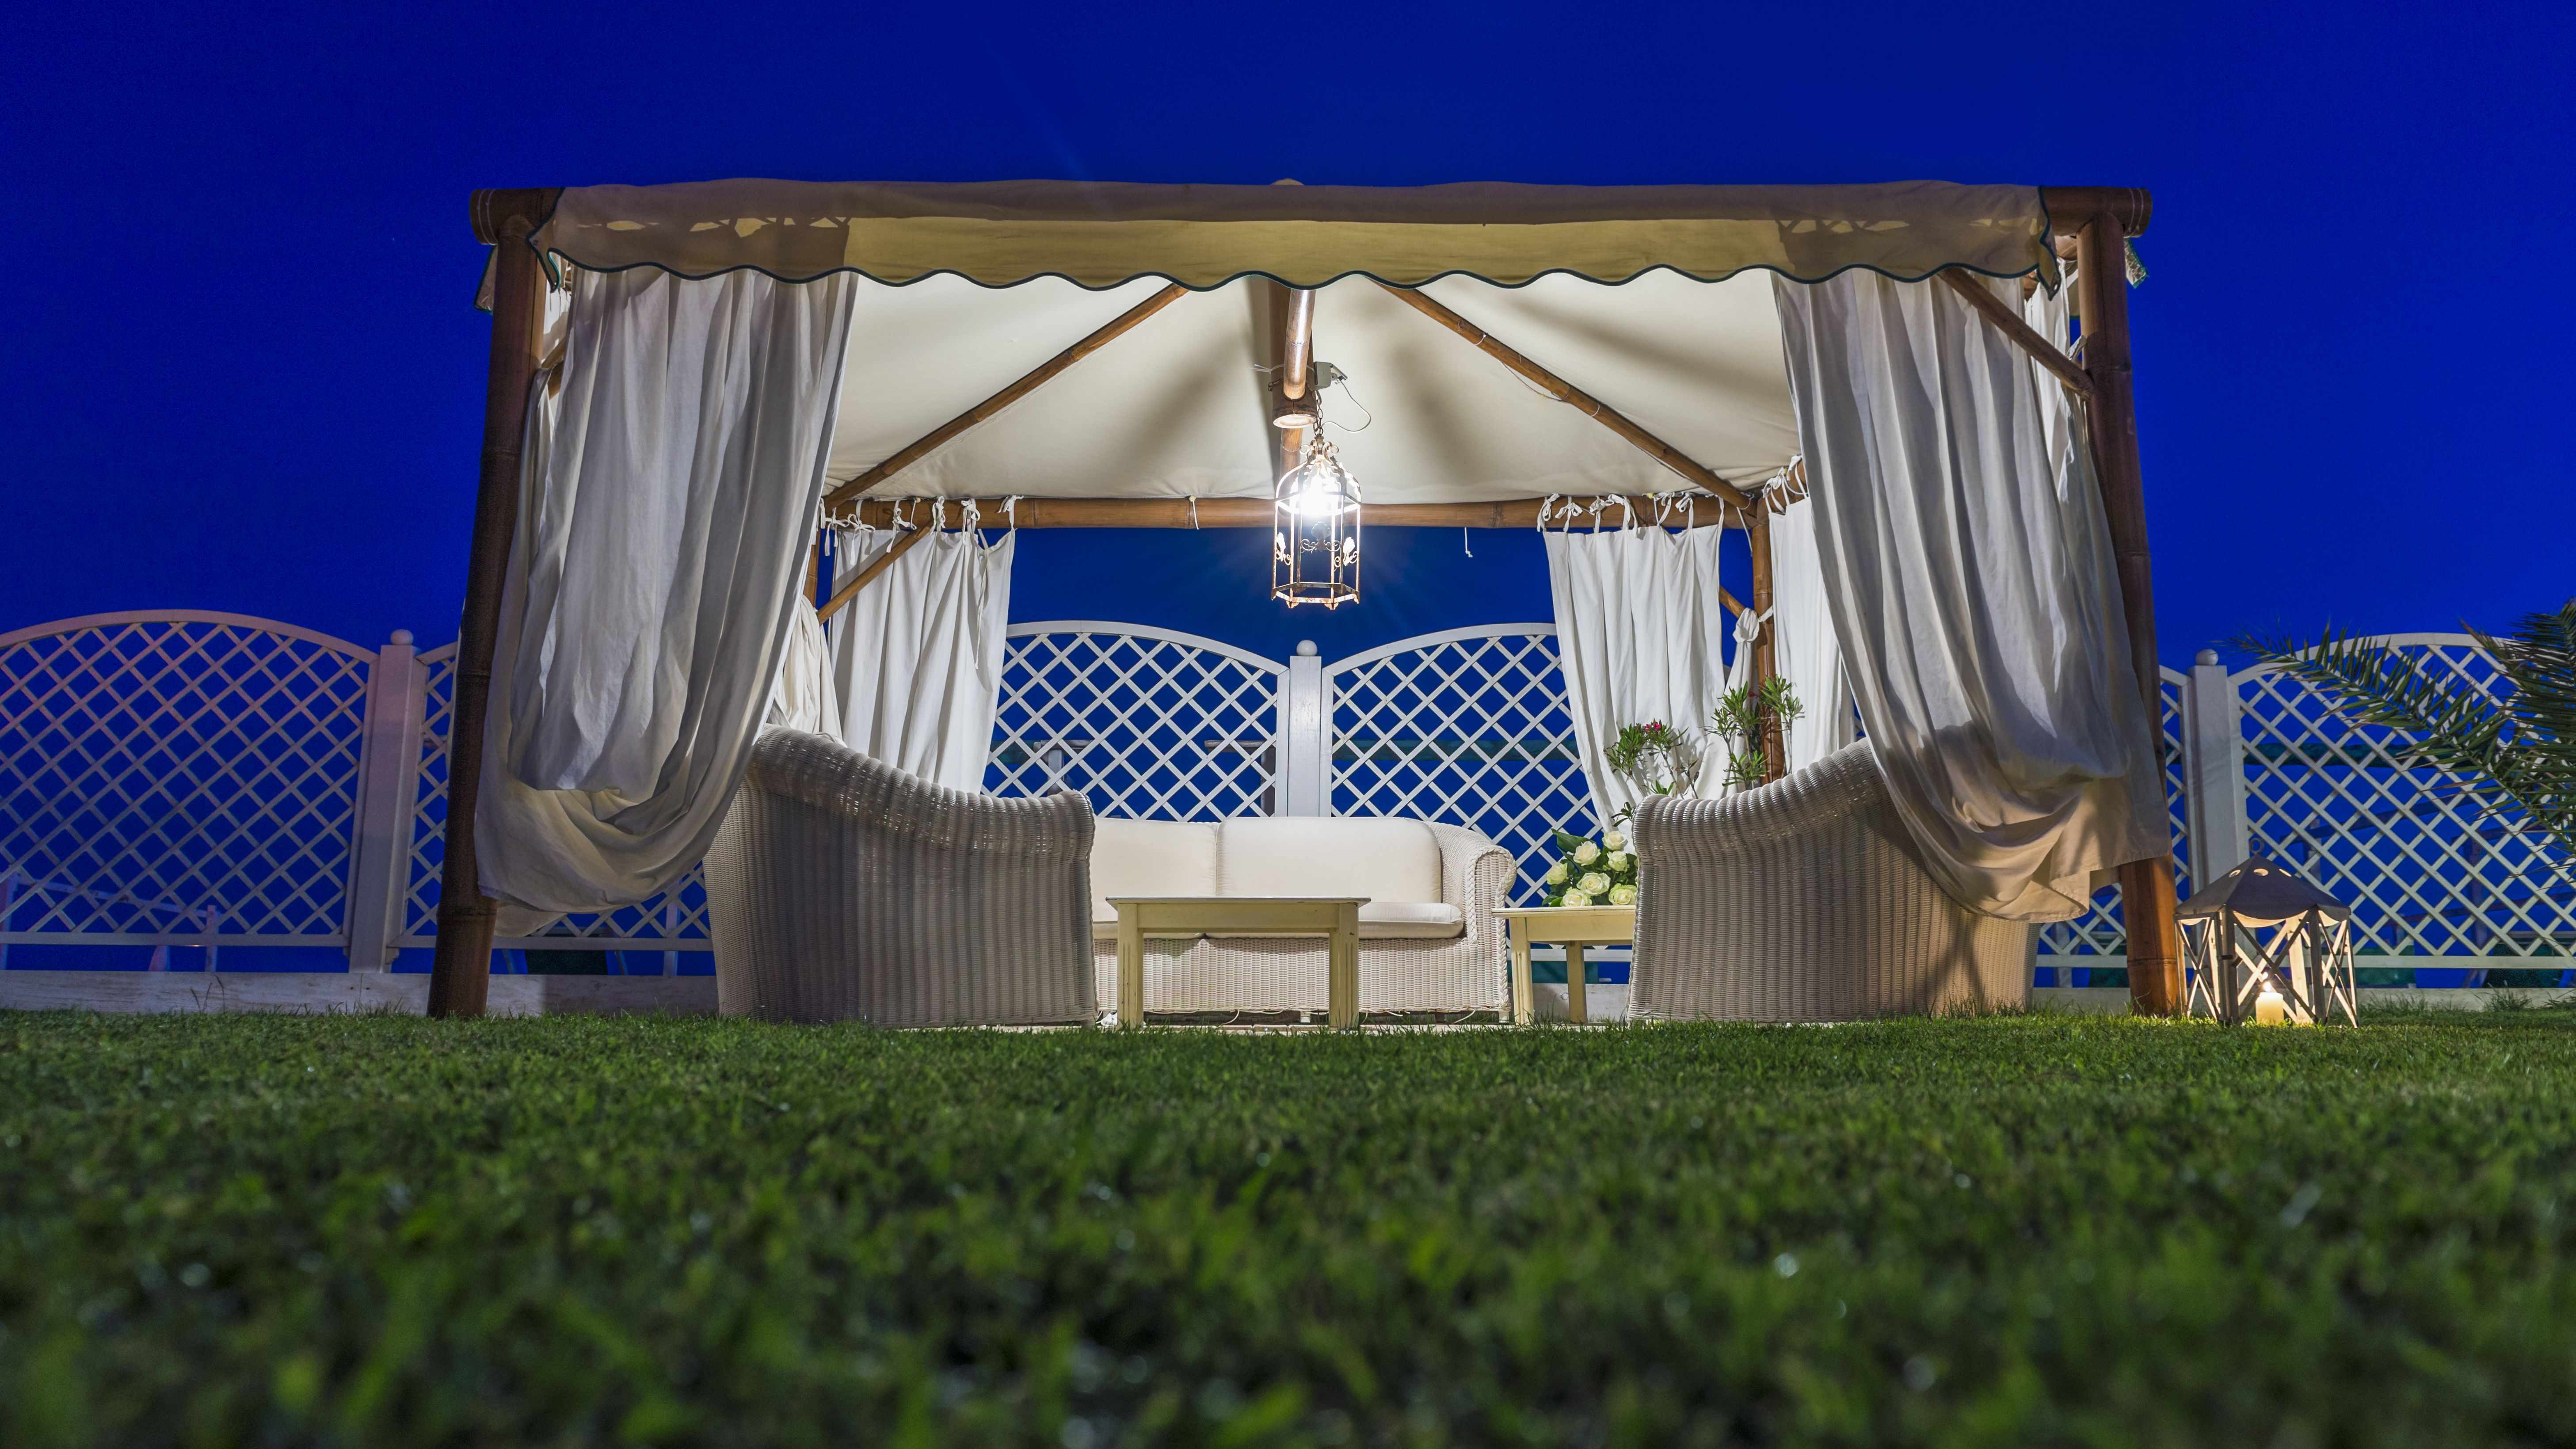 Pergola or gazebo: which is right for your garden?